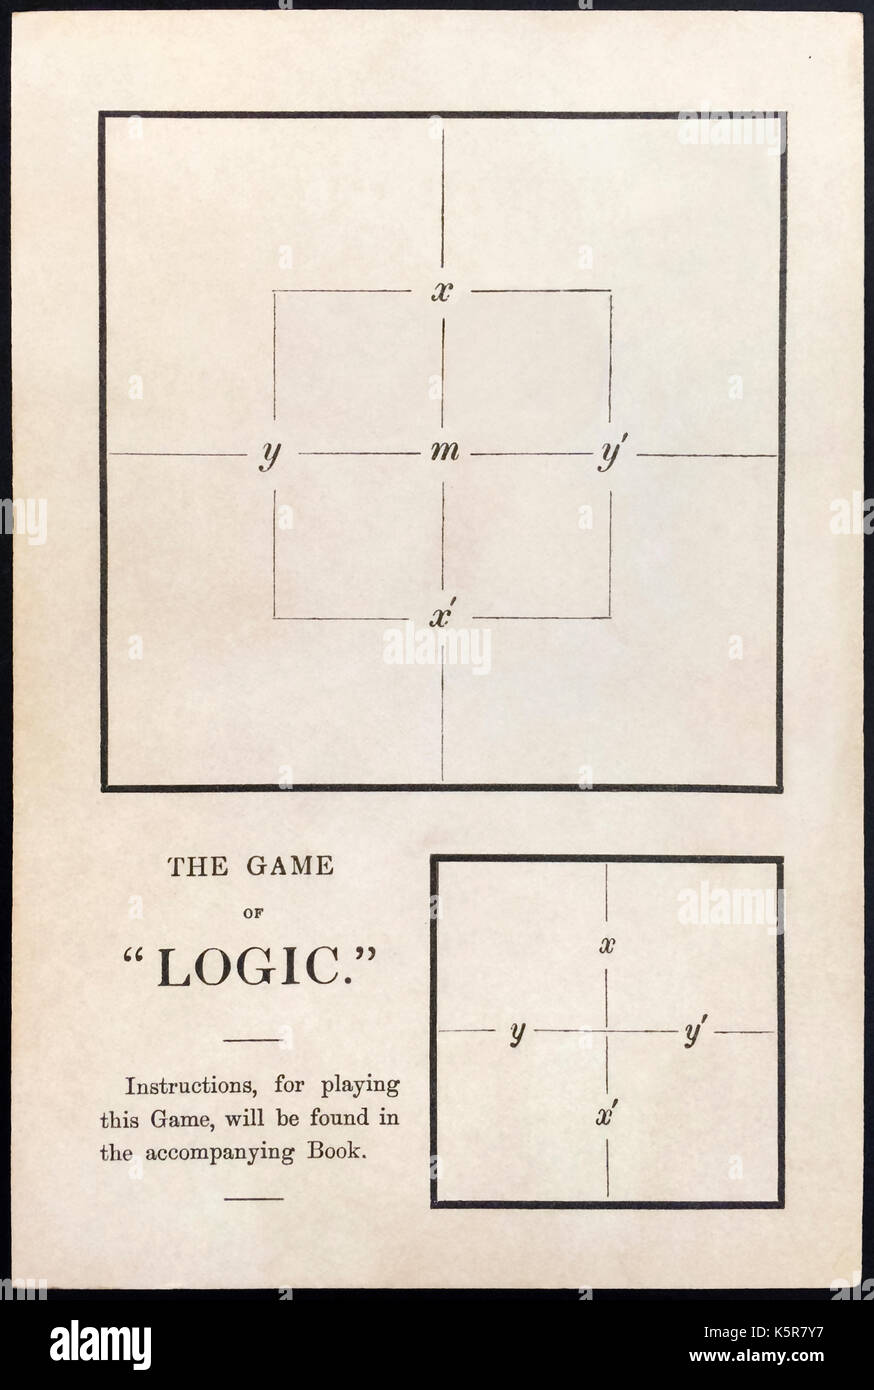 'The Game of Logic' (playing board) by Lewis Carroll (1832-1898) (Charles Lutwidge Dodgson), published in 1887. A game for at least one player. See description for more information. - Stock Image